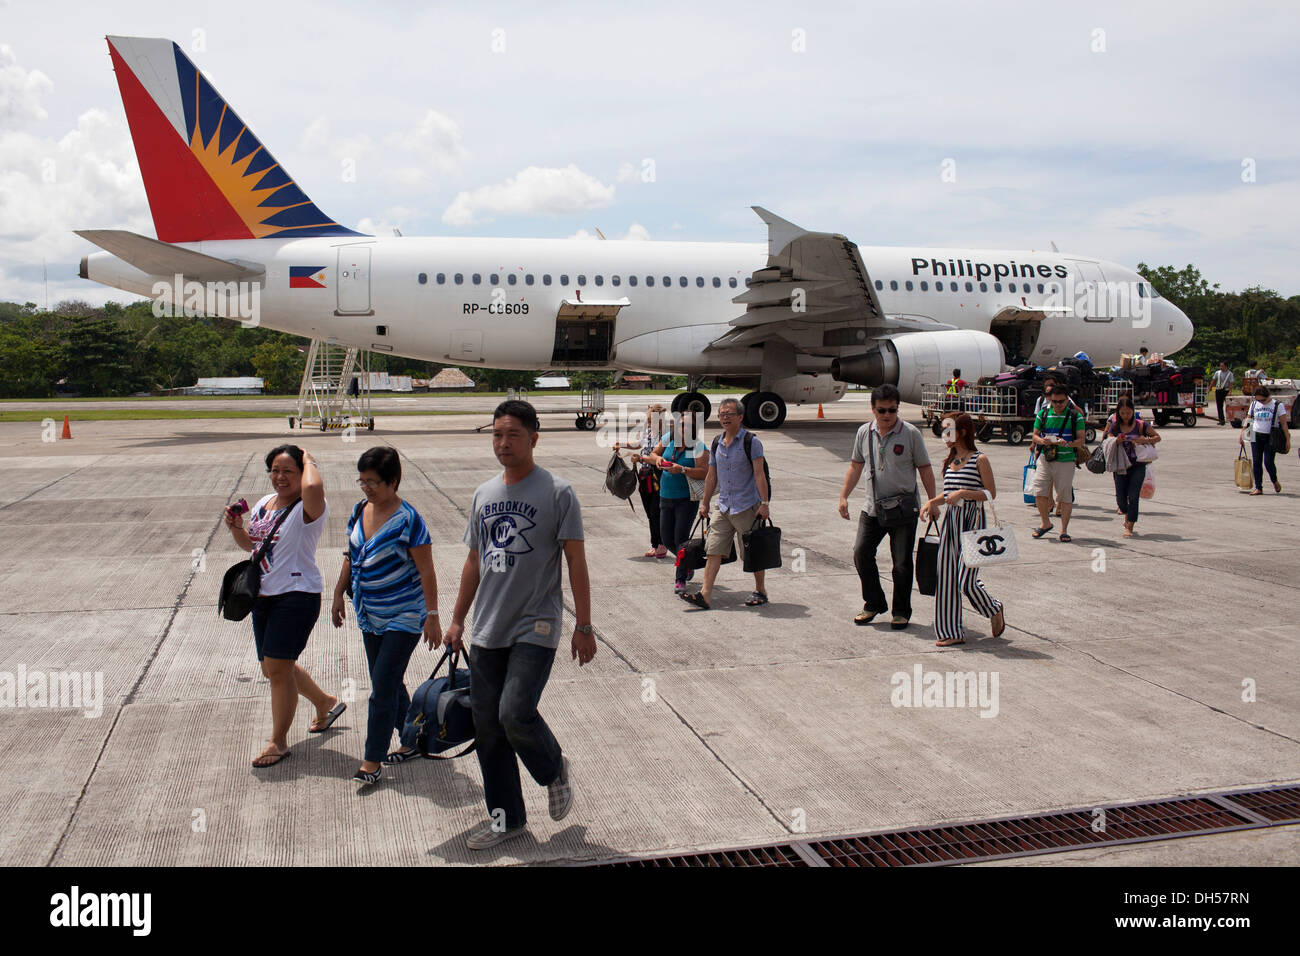 Philippines Airlines passengers arrive at Tagbilaran Airport in Bohol, Philippines Stock Photo